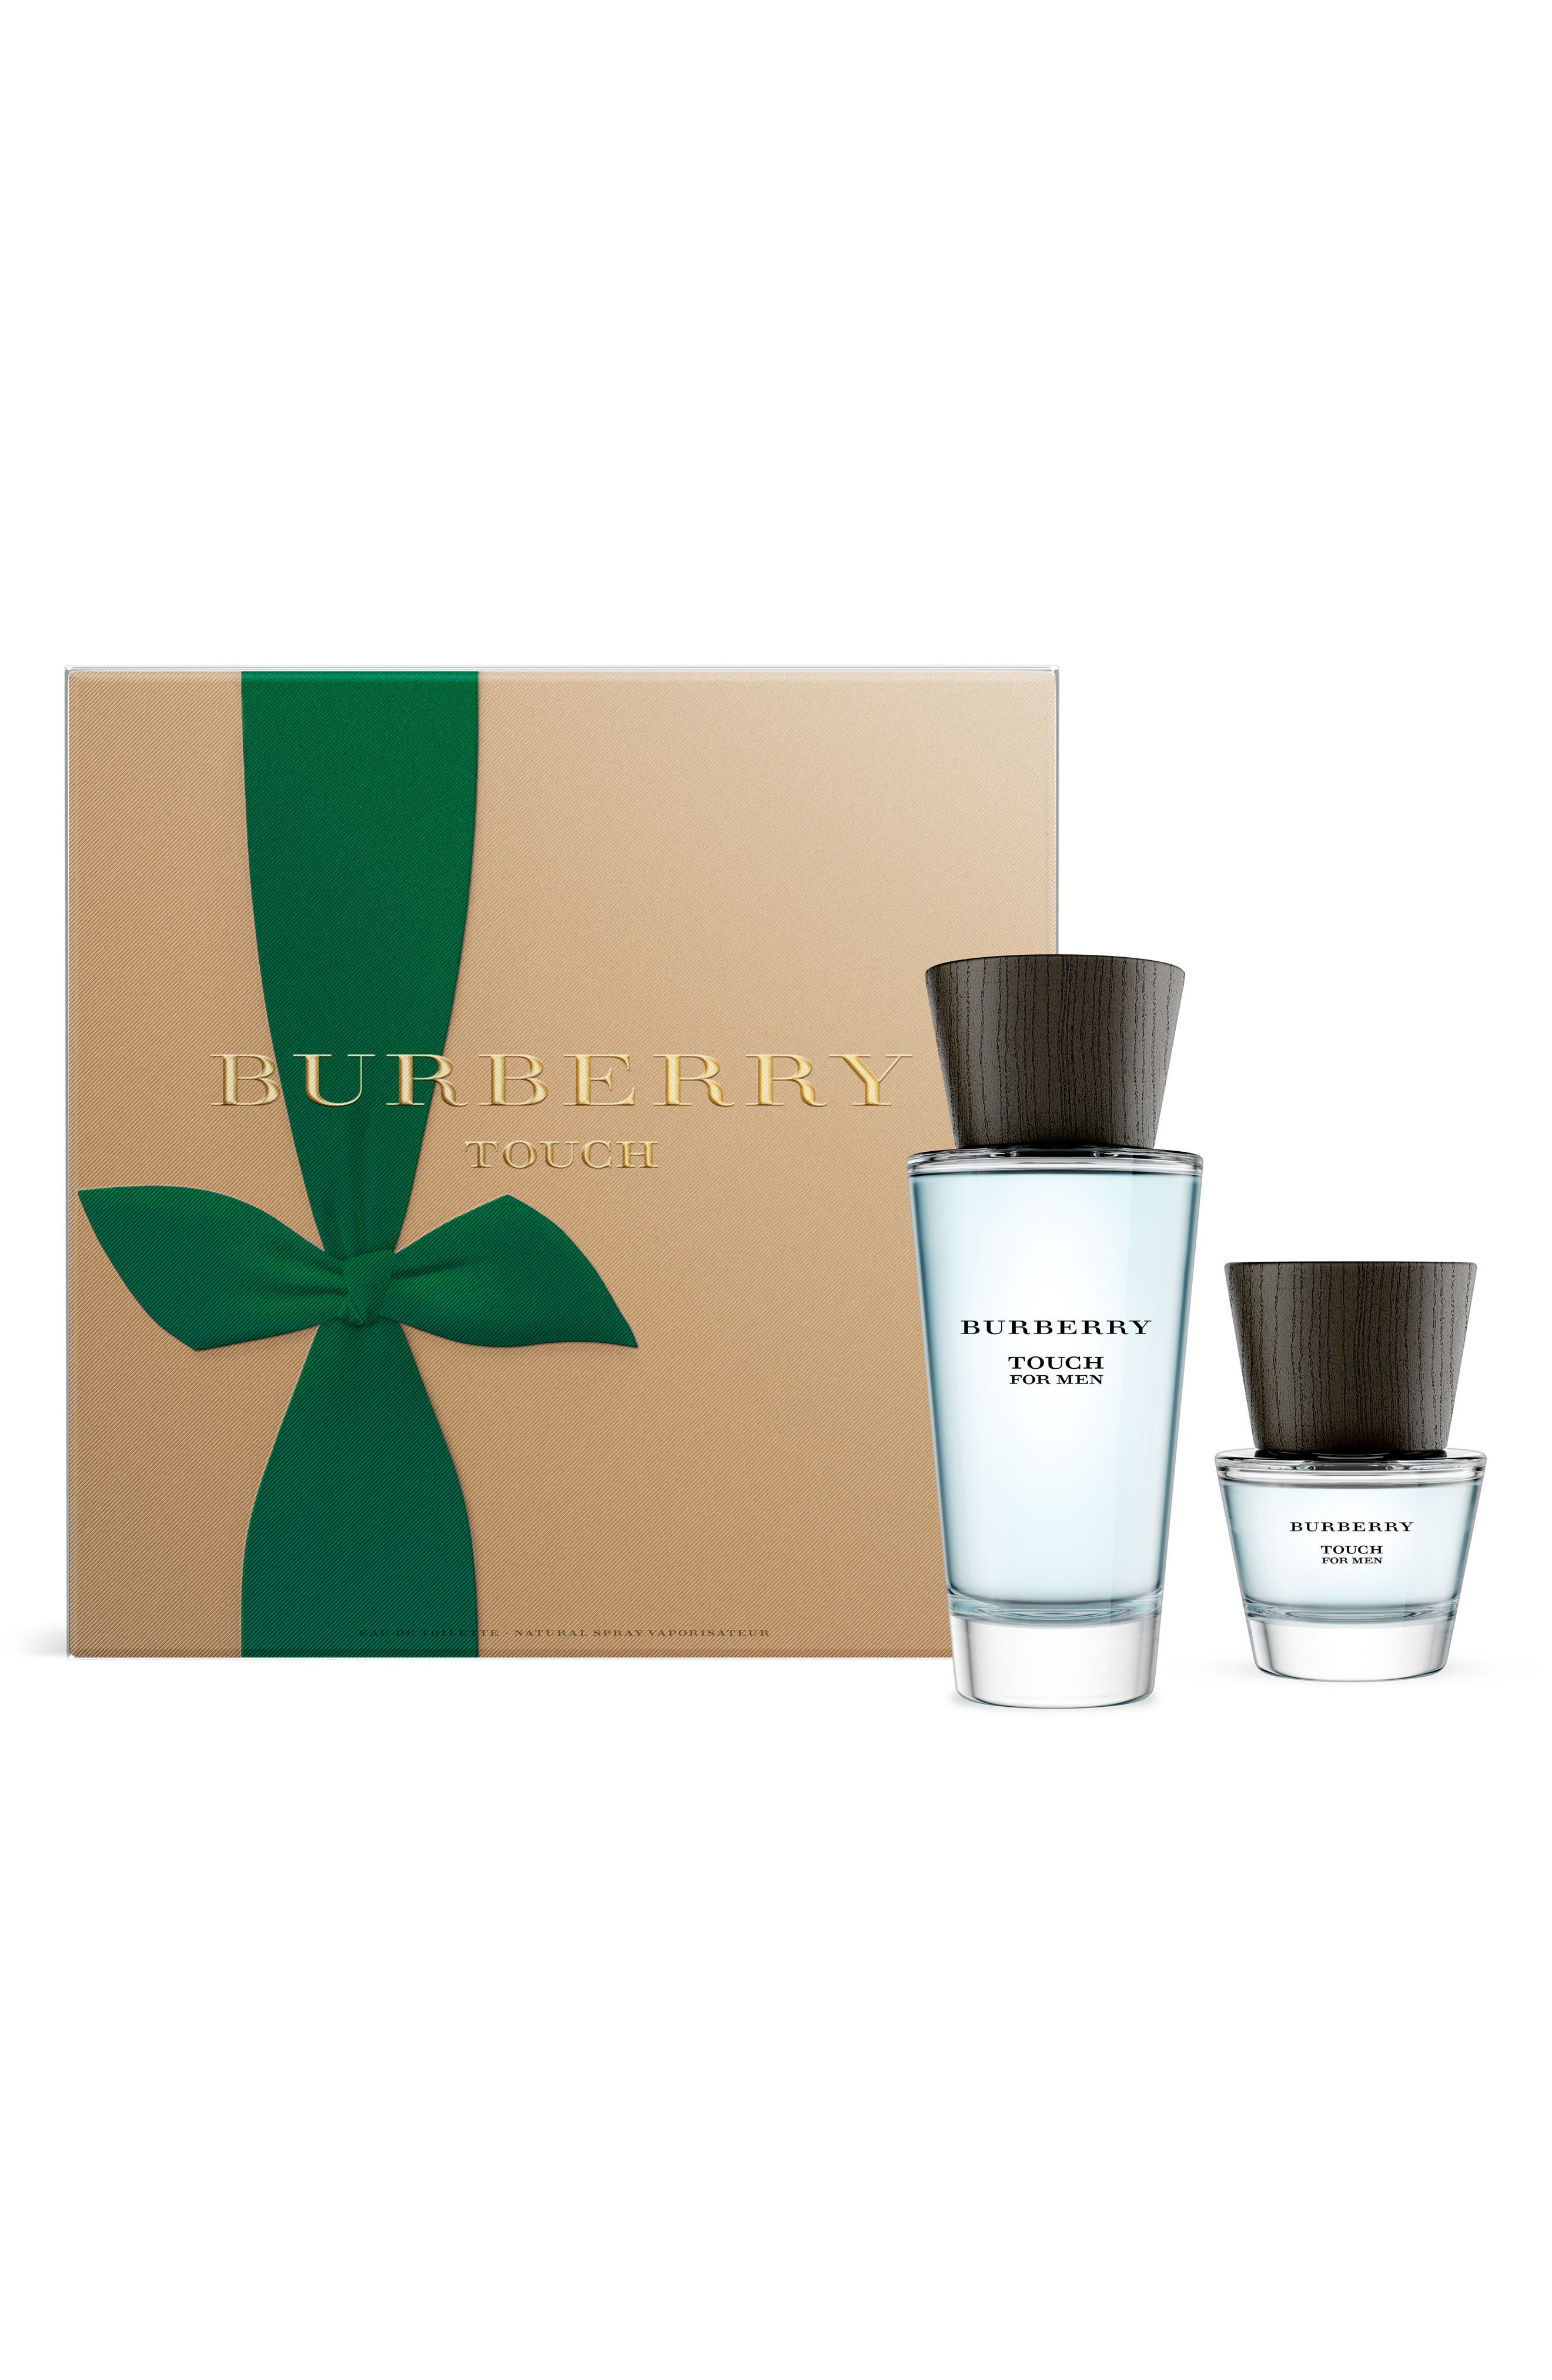 Touch for Men Eau de Toilette Set,                         Main,                         color, No Color